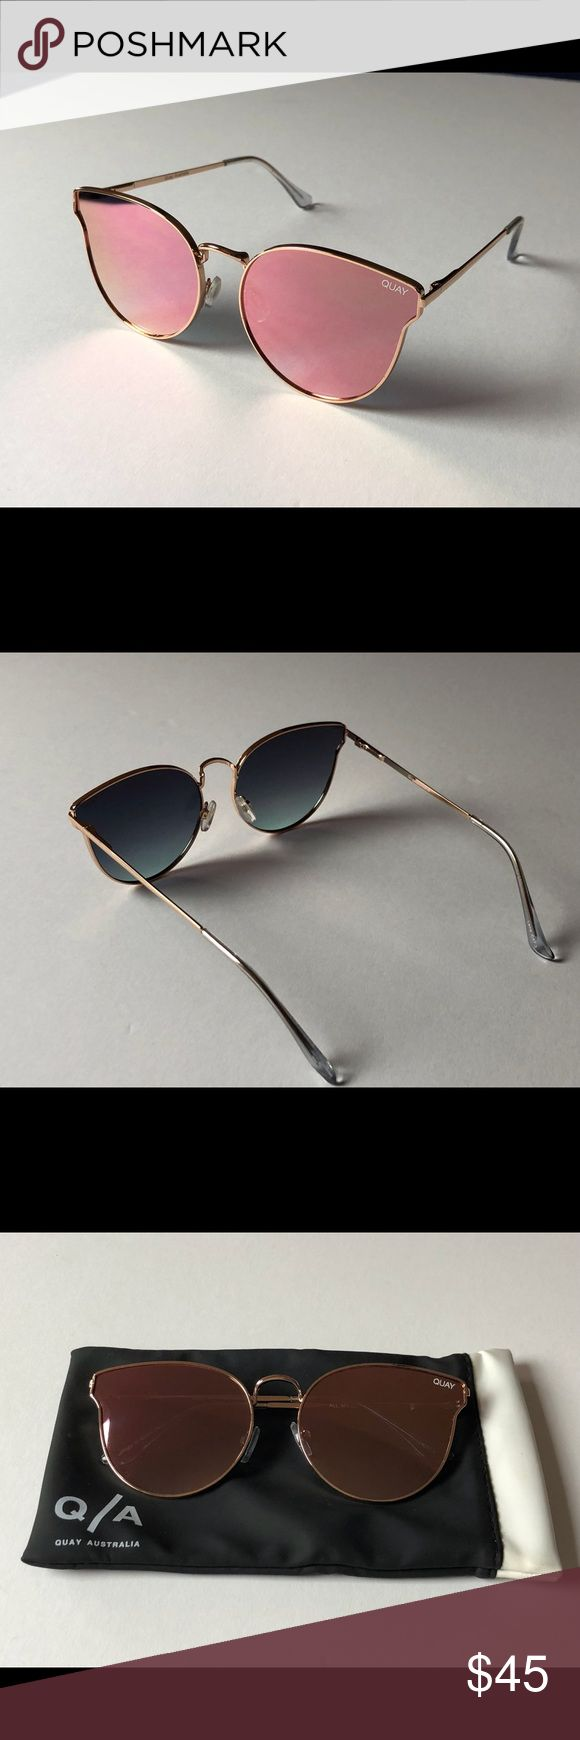 Quay Australia all my love sunglasses in rose gold Quay Australia all my love sunglasses in rose gold- up for sale are Quay Australian sunglasses in great condition with soft case. Tiny scratch on lense, barley noticeable in good lighting. $45 Quay Australia Accessories Sunglasses